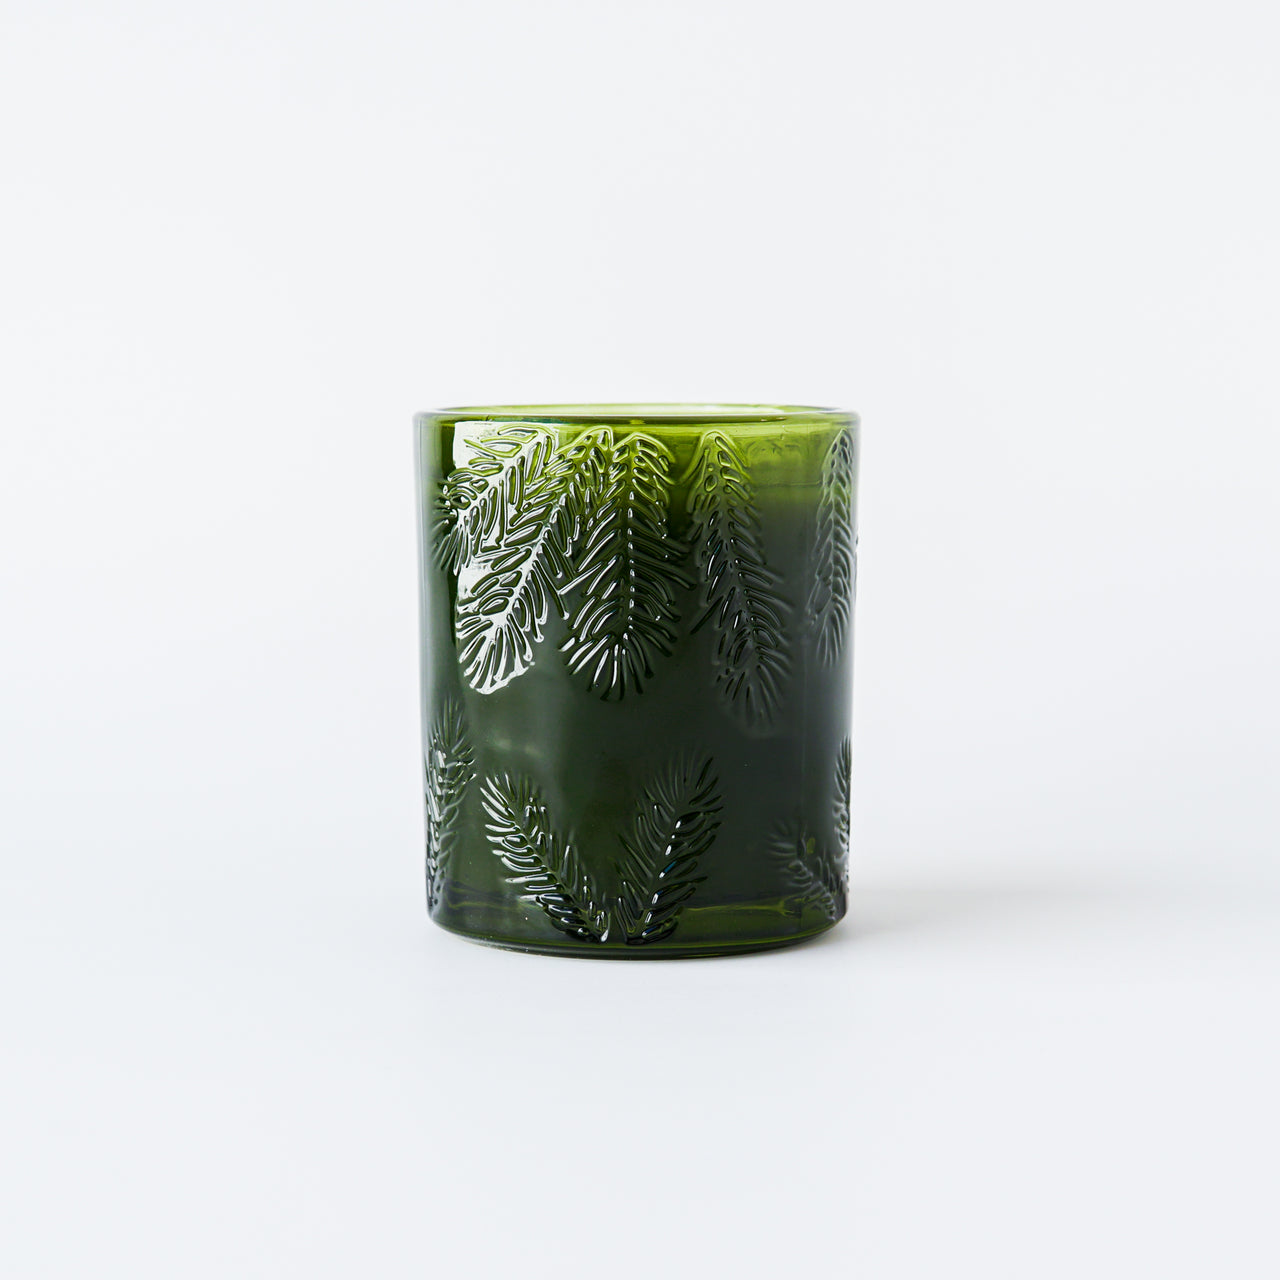 Frasier Fir Candle 6.5oz